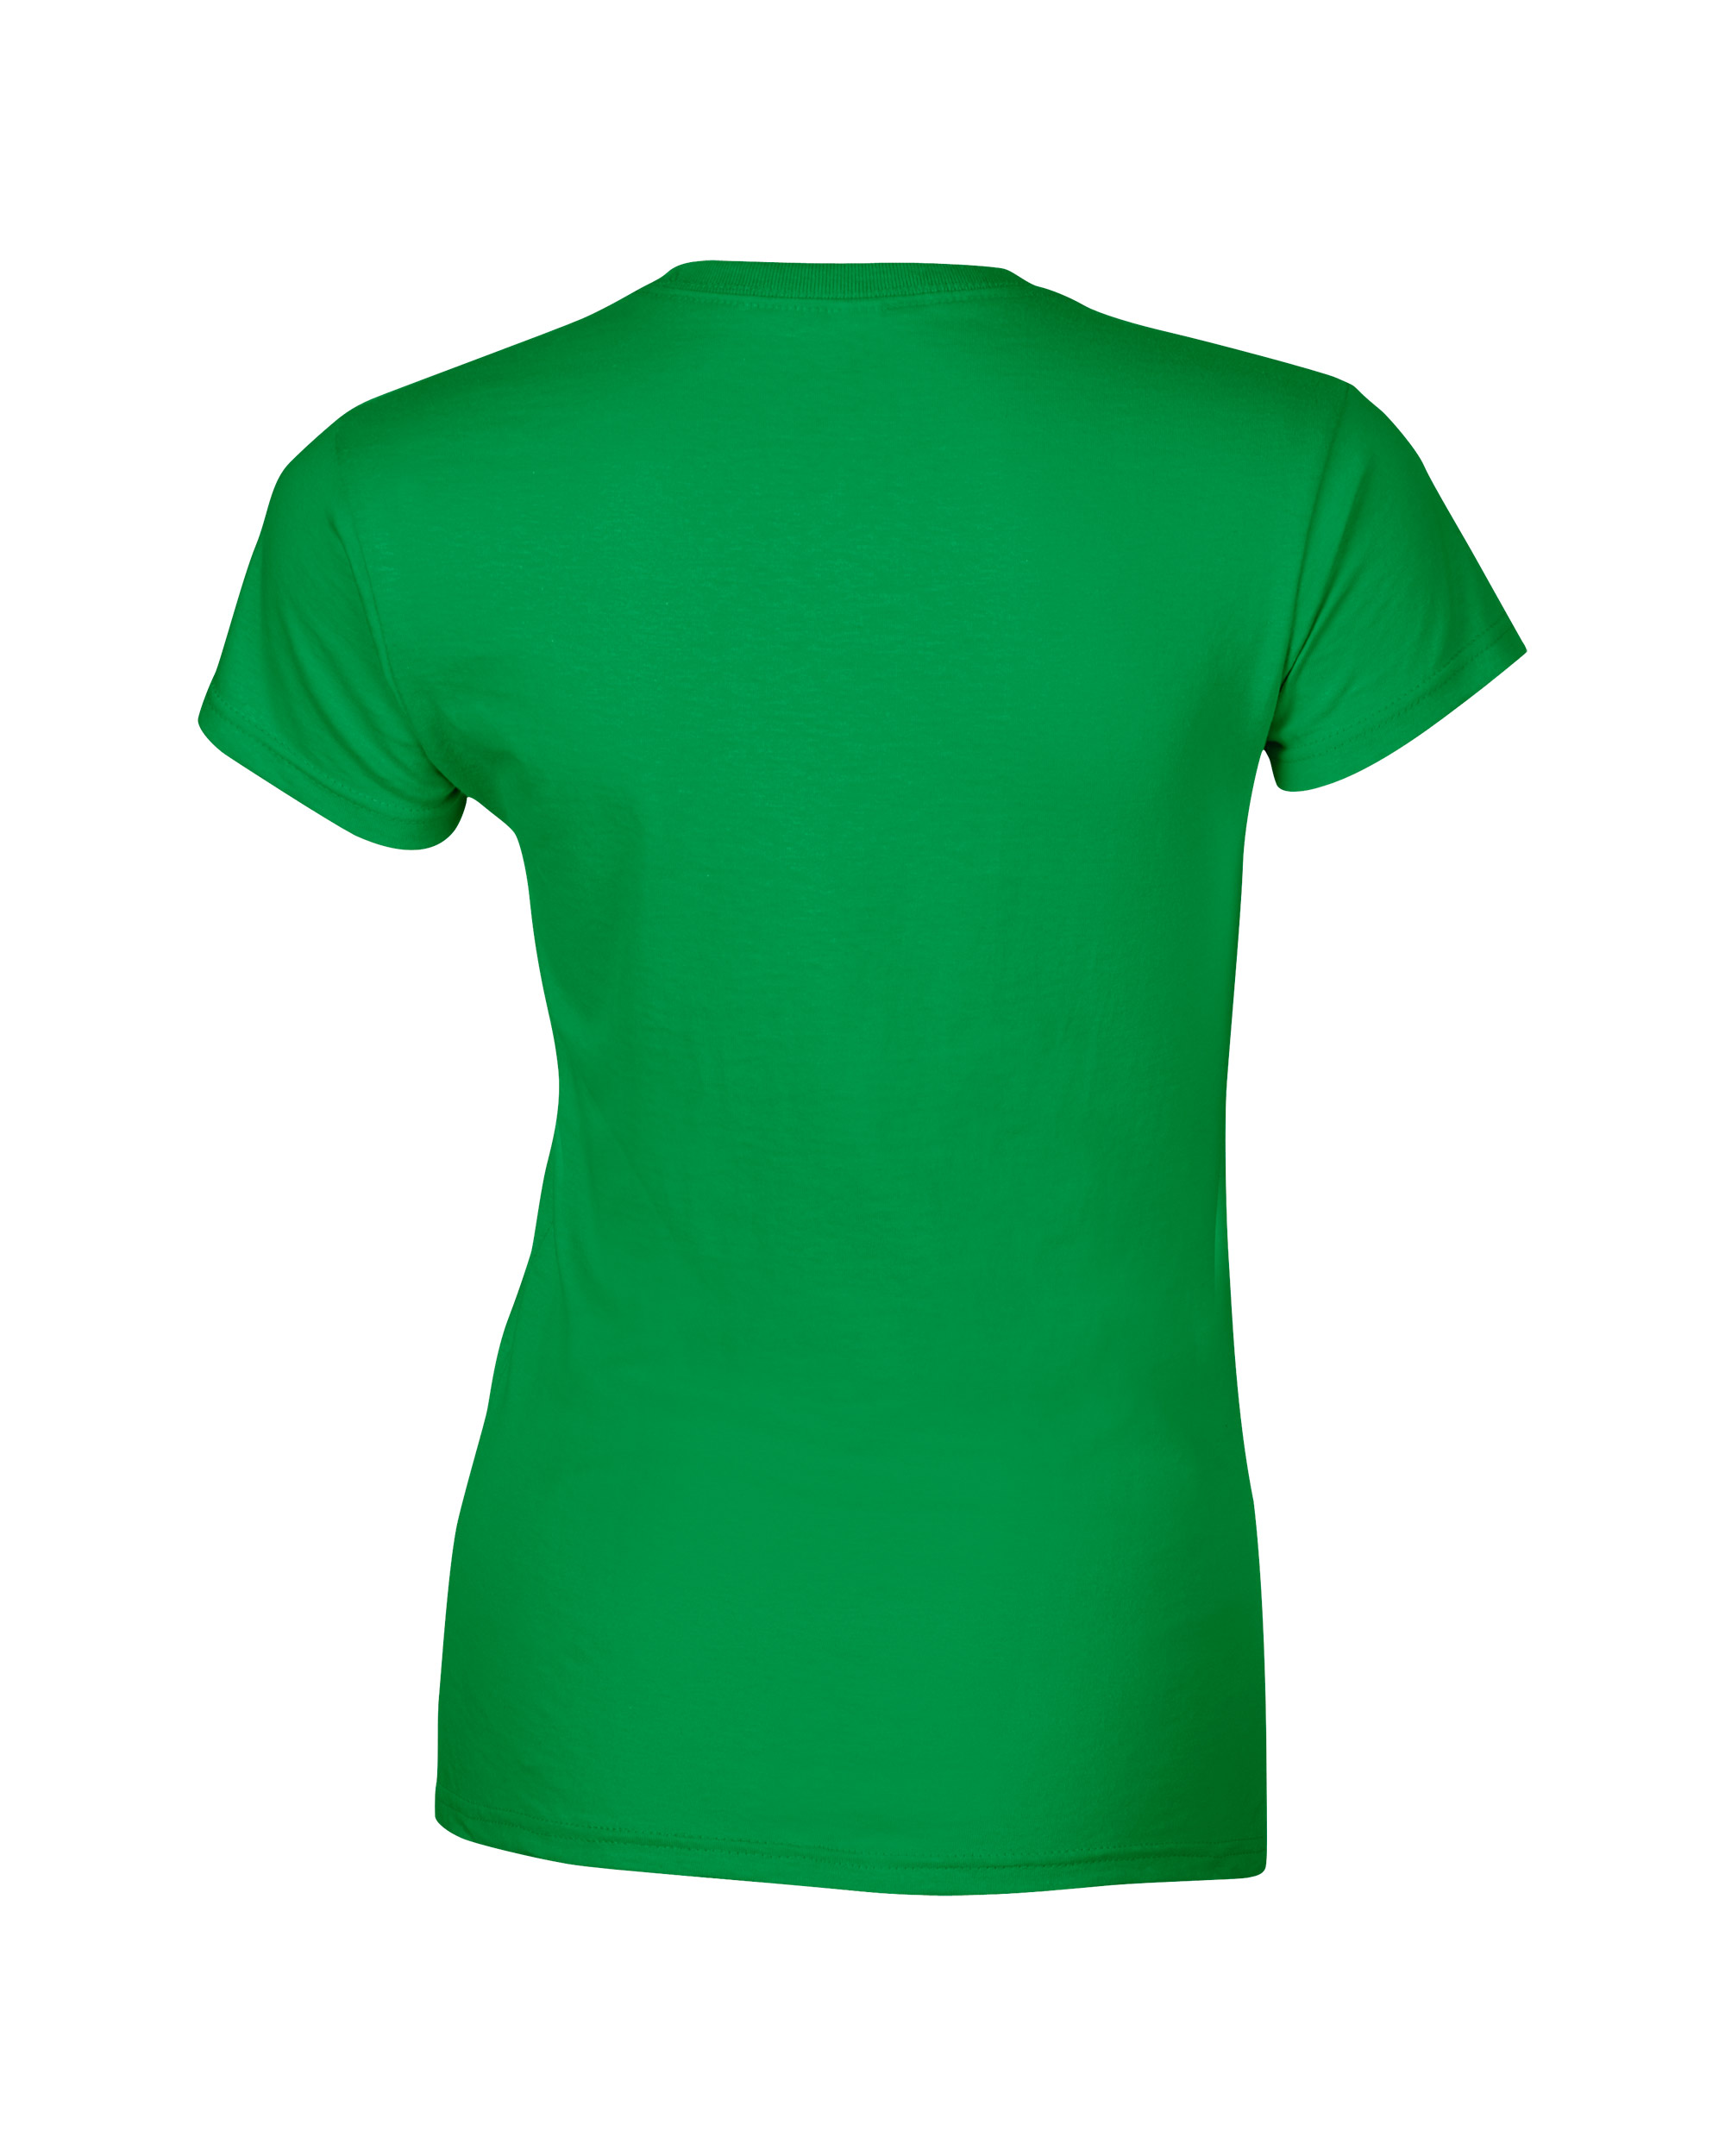 Gildan Softstyle N I P L Irish Green M P L T Shirt